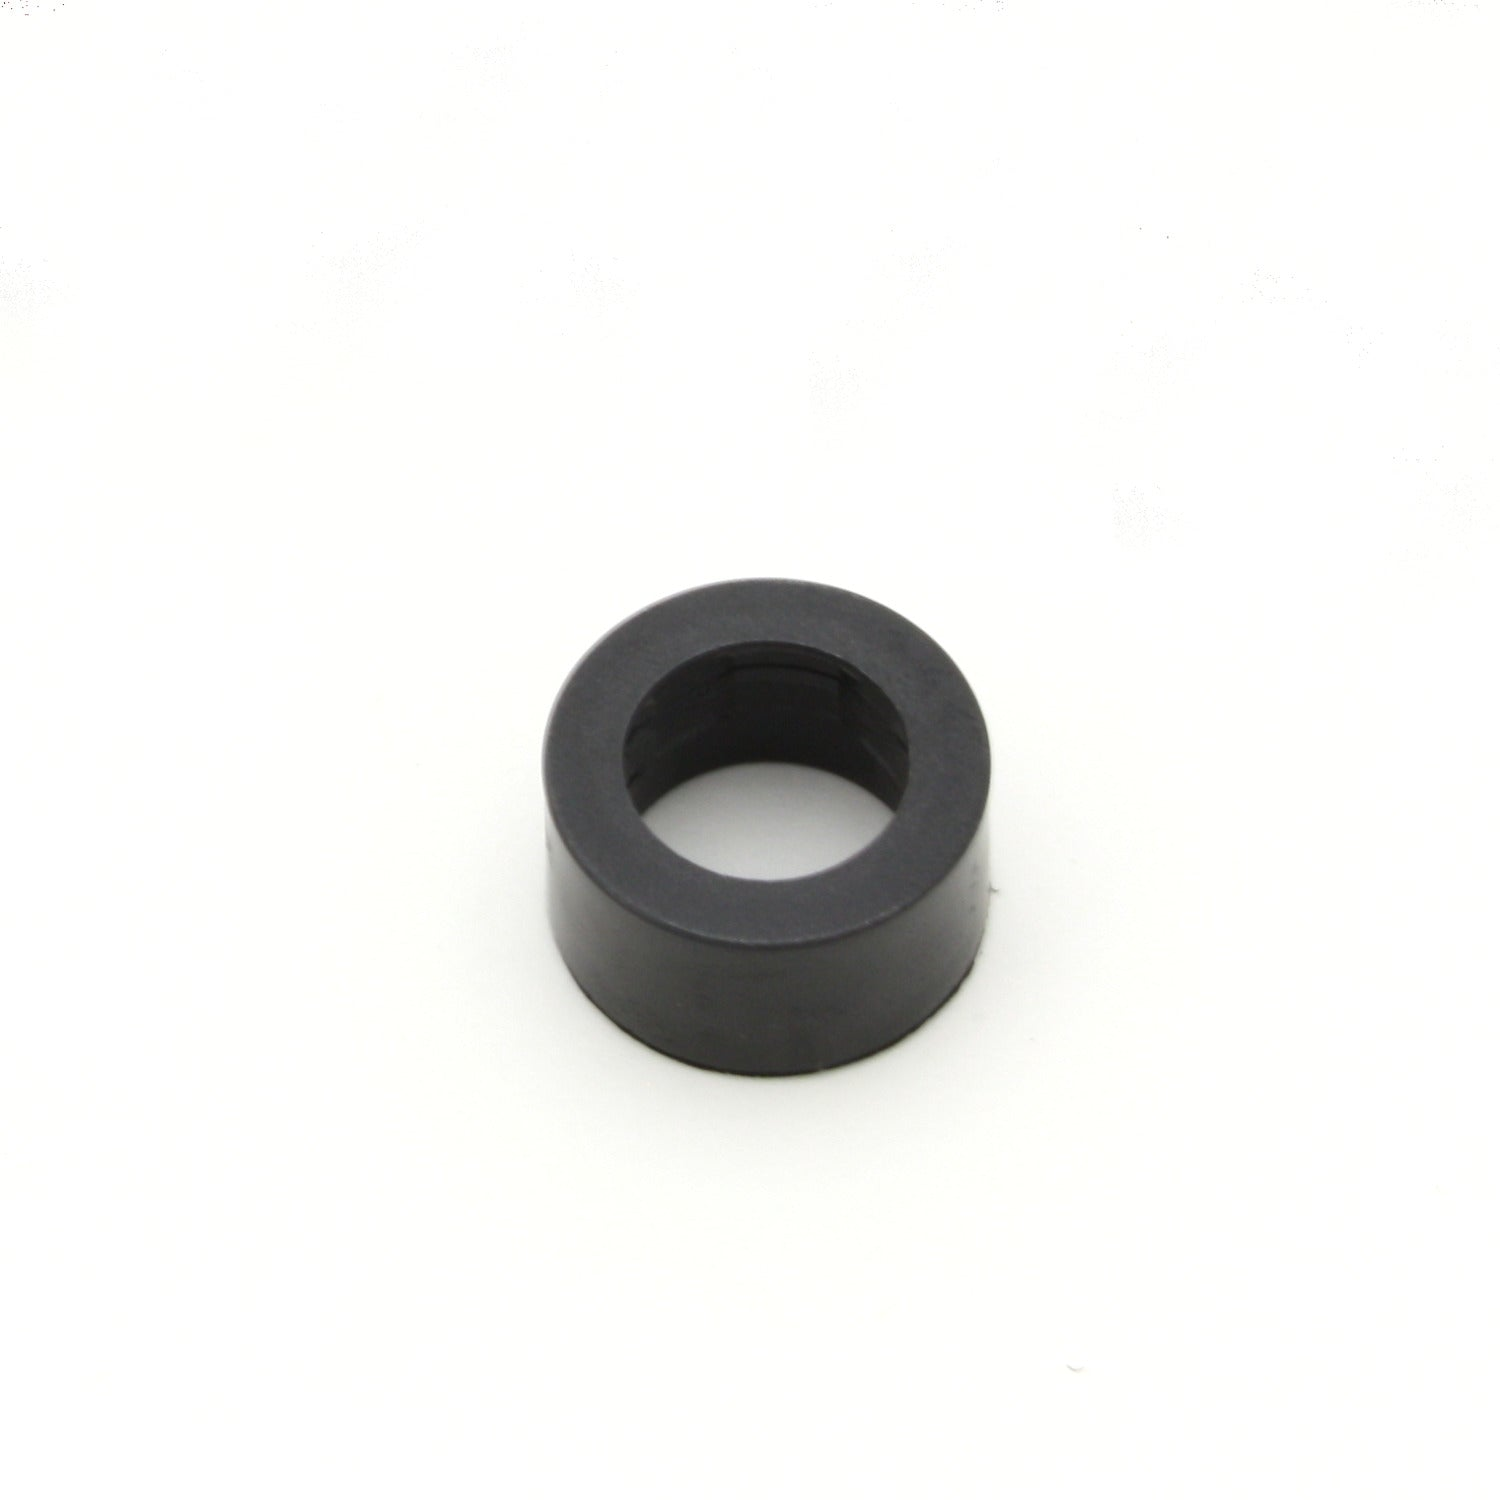 PerTronix SV-1413 Magnet Sleeve (only) for SV-141 Ignitor Kit